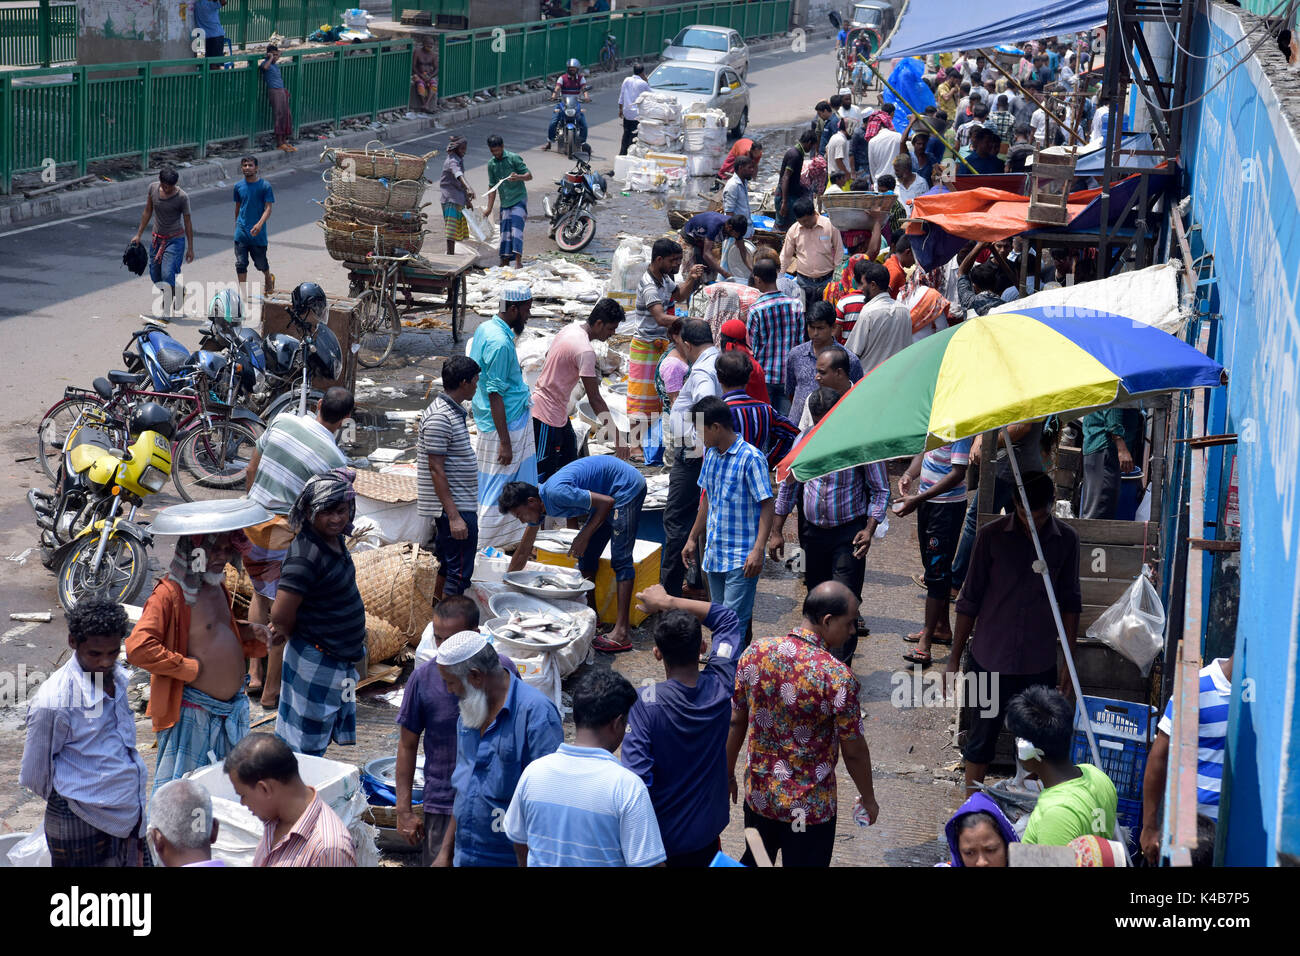 DHAKA, BANGLADESH – SEPTEMBER 05, 2017: Bangladeshi traders sell Ilisha fish at a market in Dhaka, Bangladesh, September 05, 2017. The fish contributes about 12% of the total fish production and about 1% of GDP in Bangladesh. About 450,000 people are directly involved with the catching for livelihood; around four to five million people are indirectly involved with the trade. It is also the national fish of Bangladesh. - Stock Image